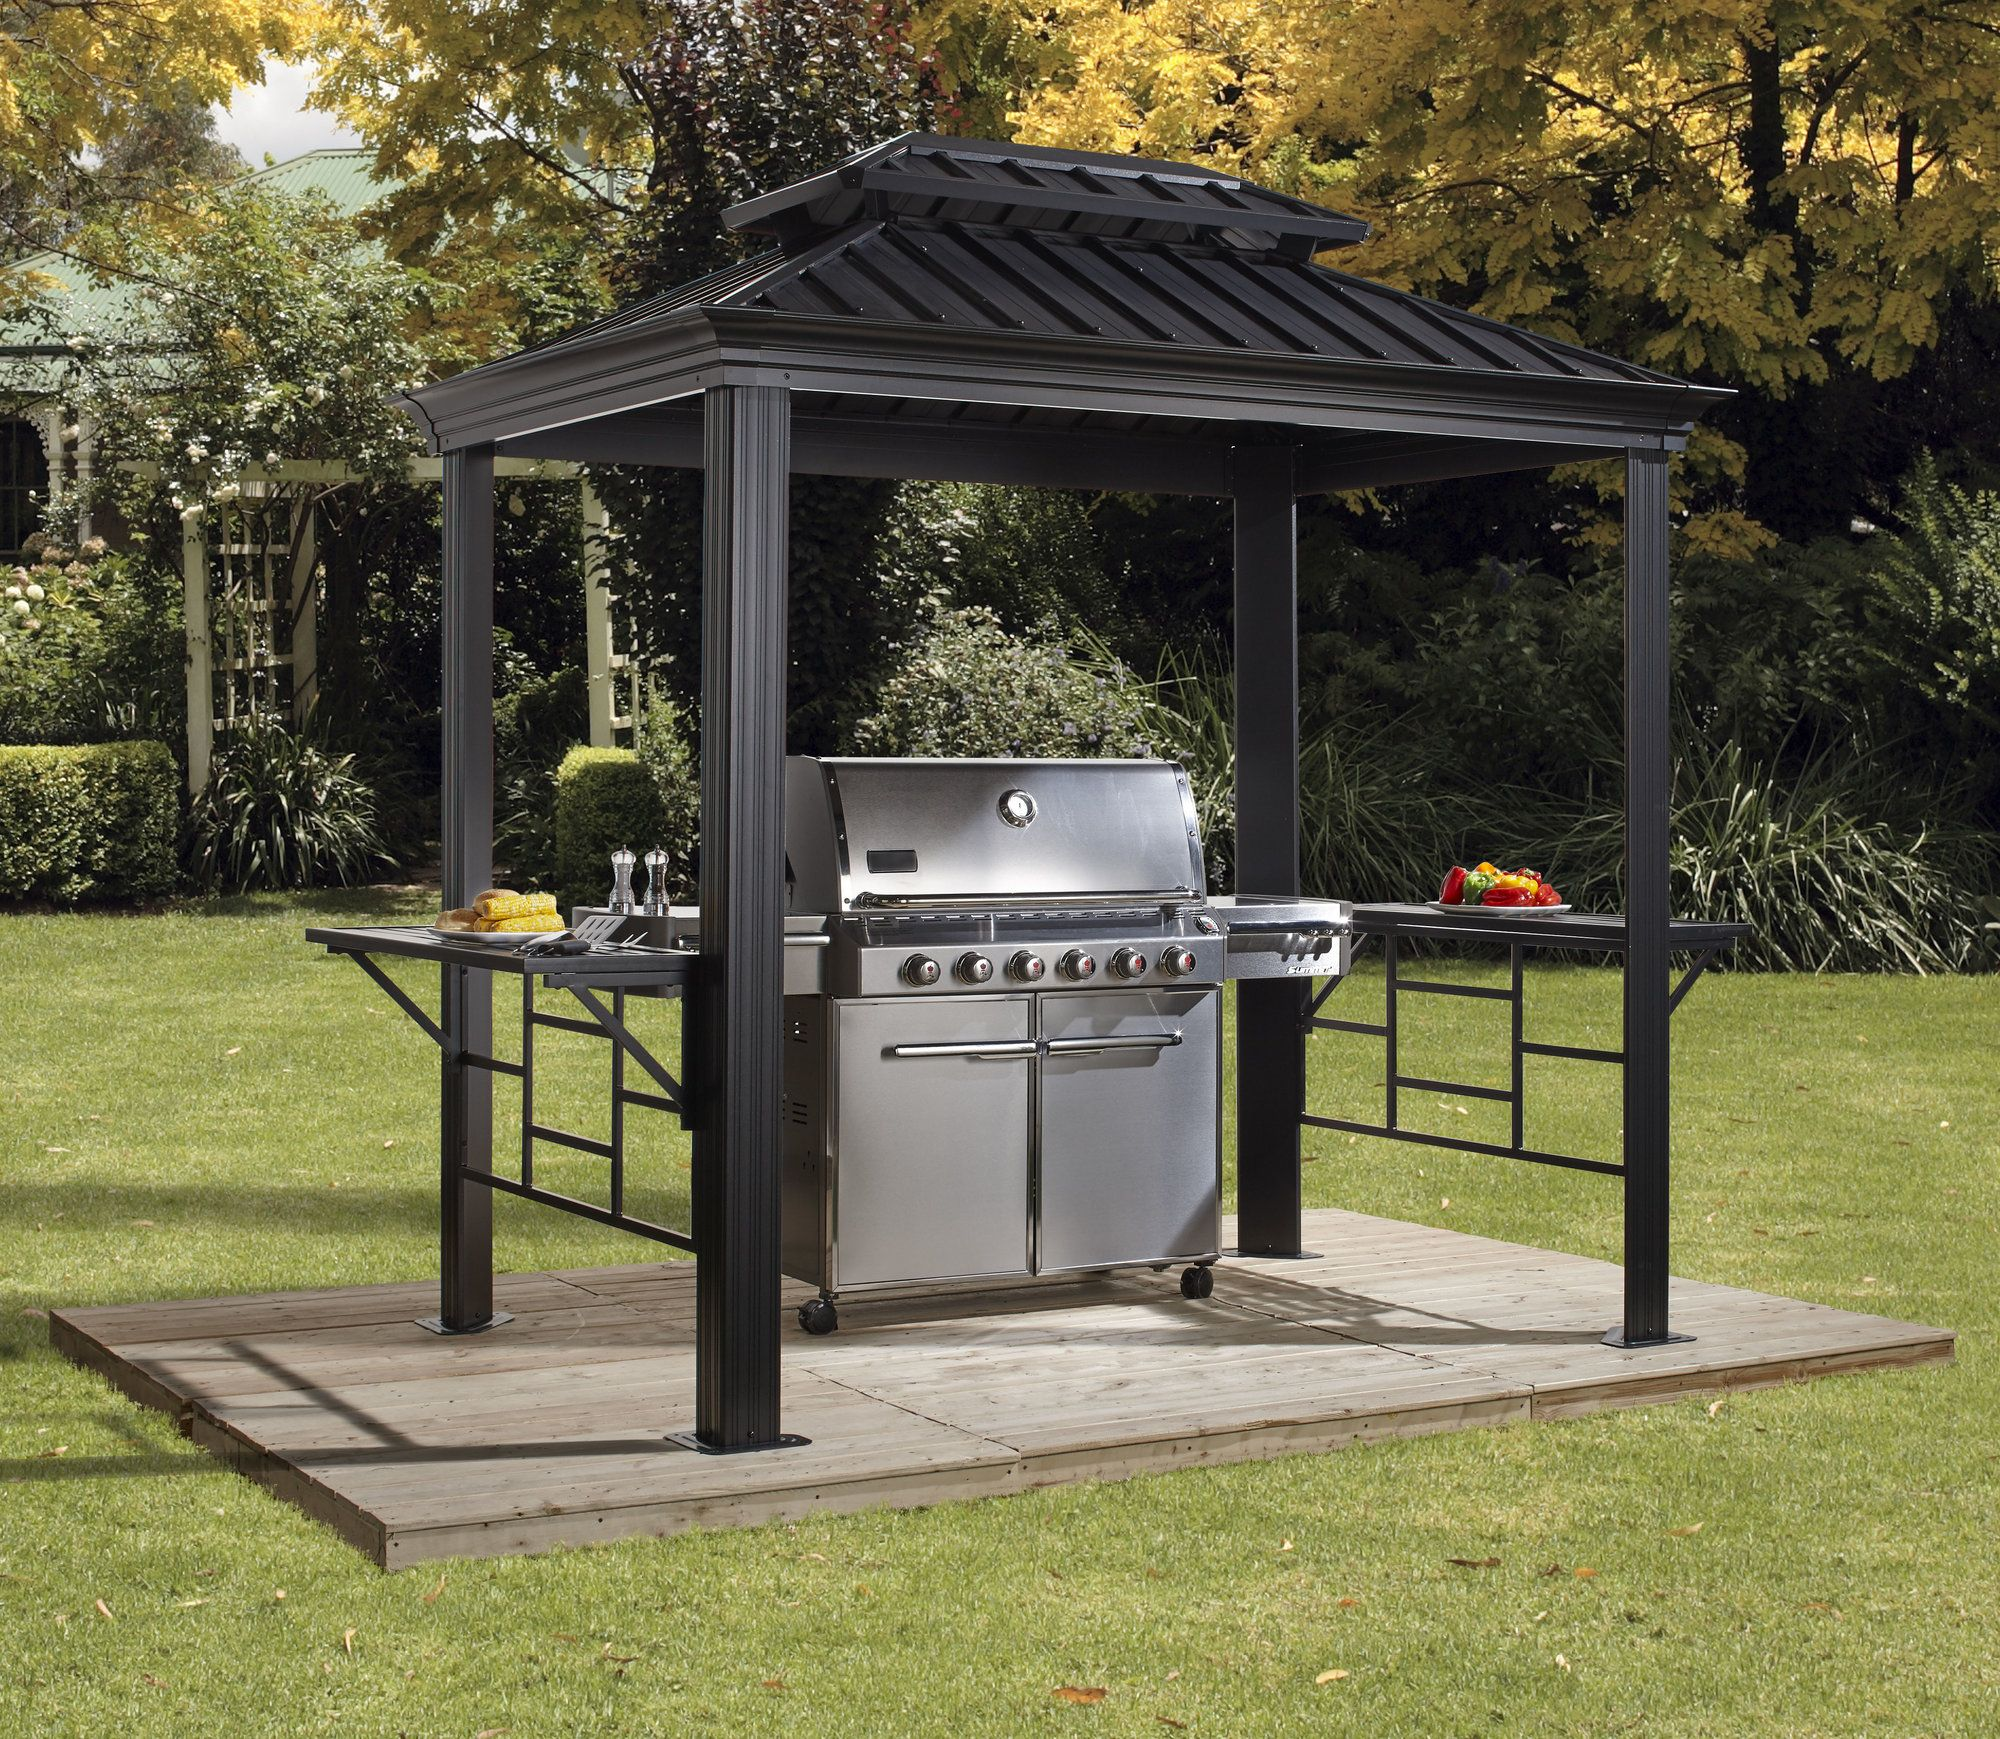 walmartcom com x walmart bbq z gazebo decoration outdoor canopy shade instant gallery awning home